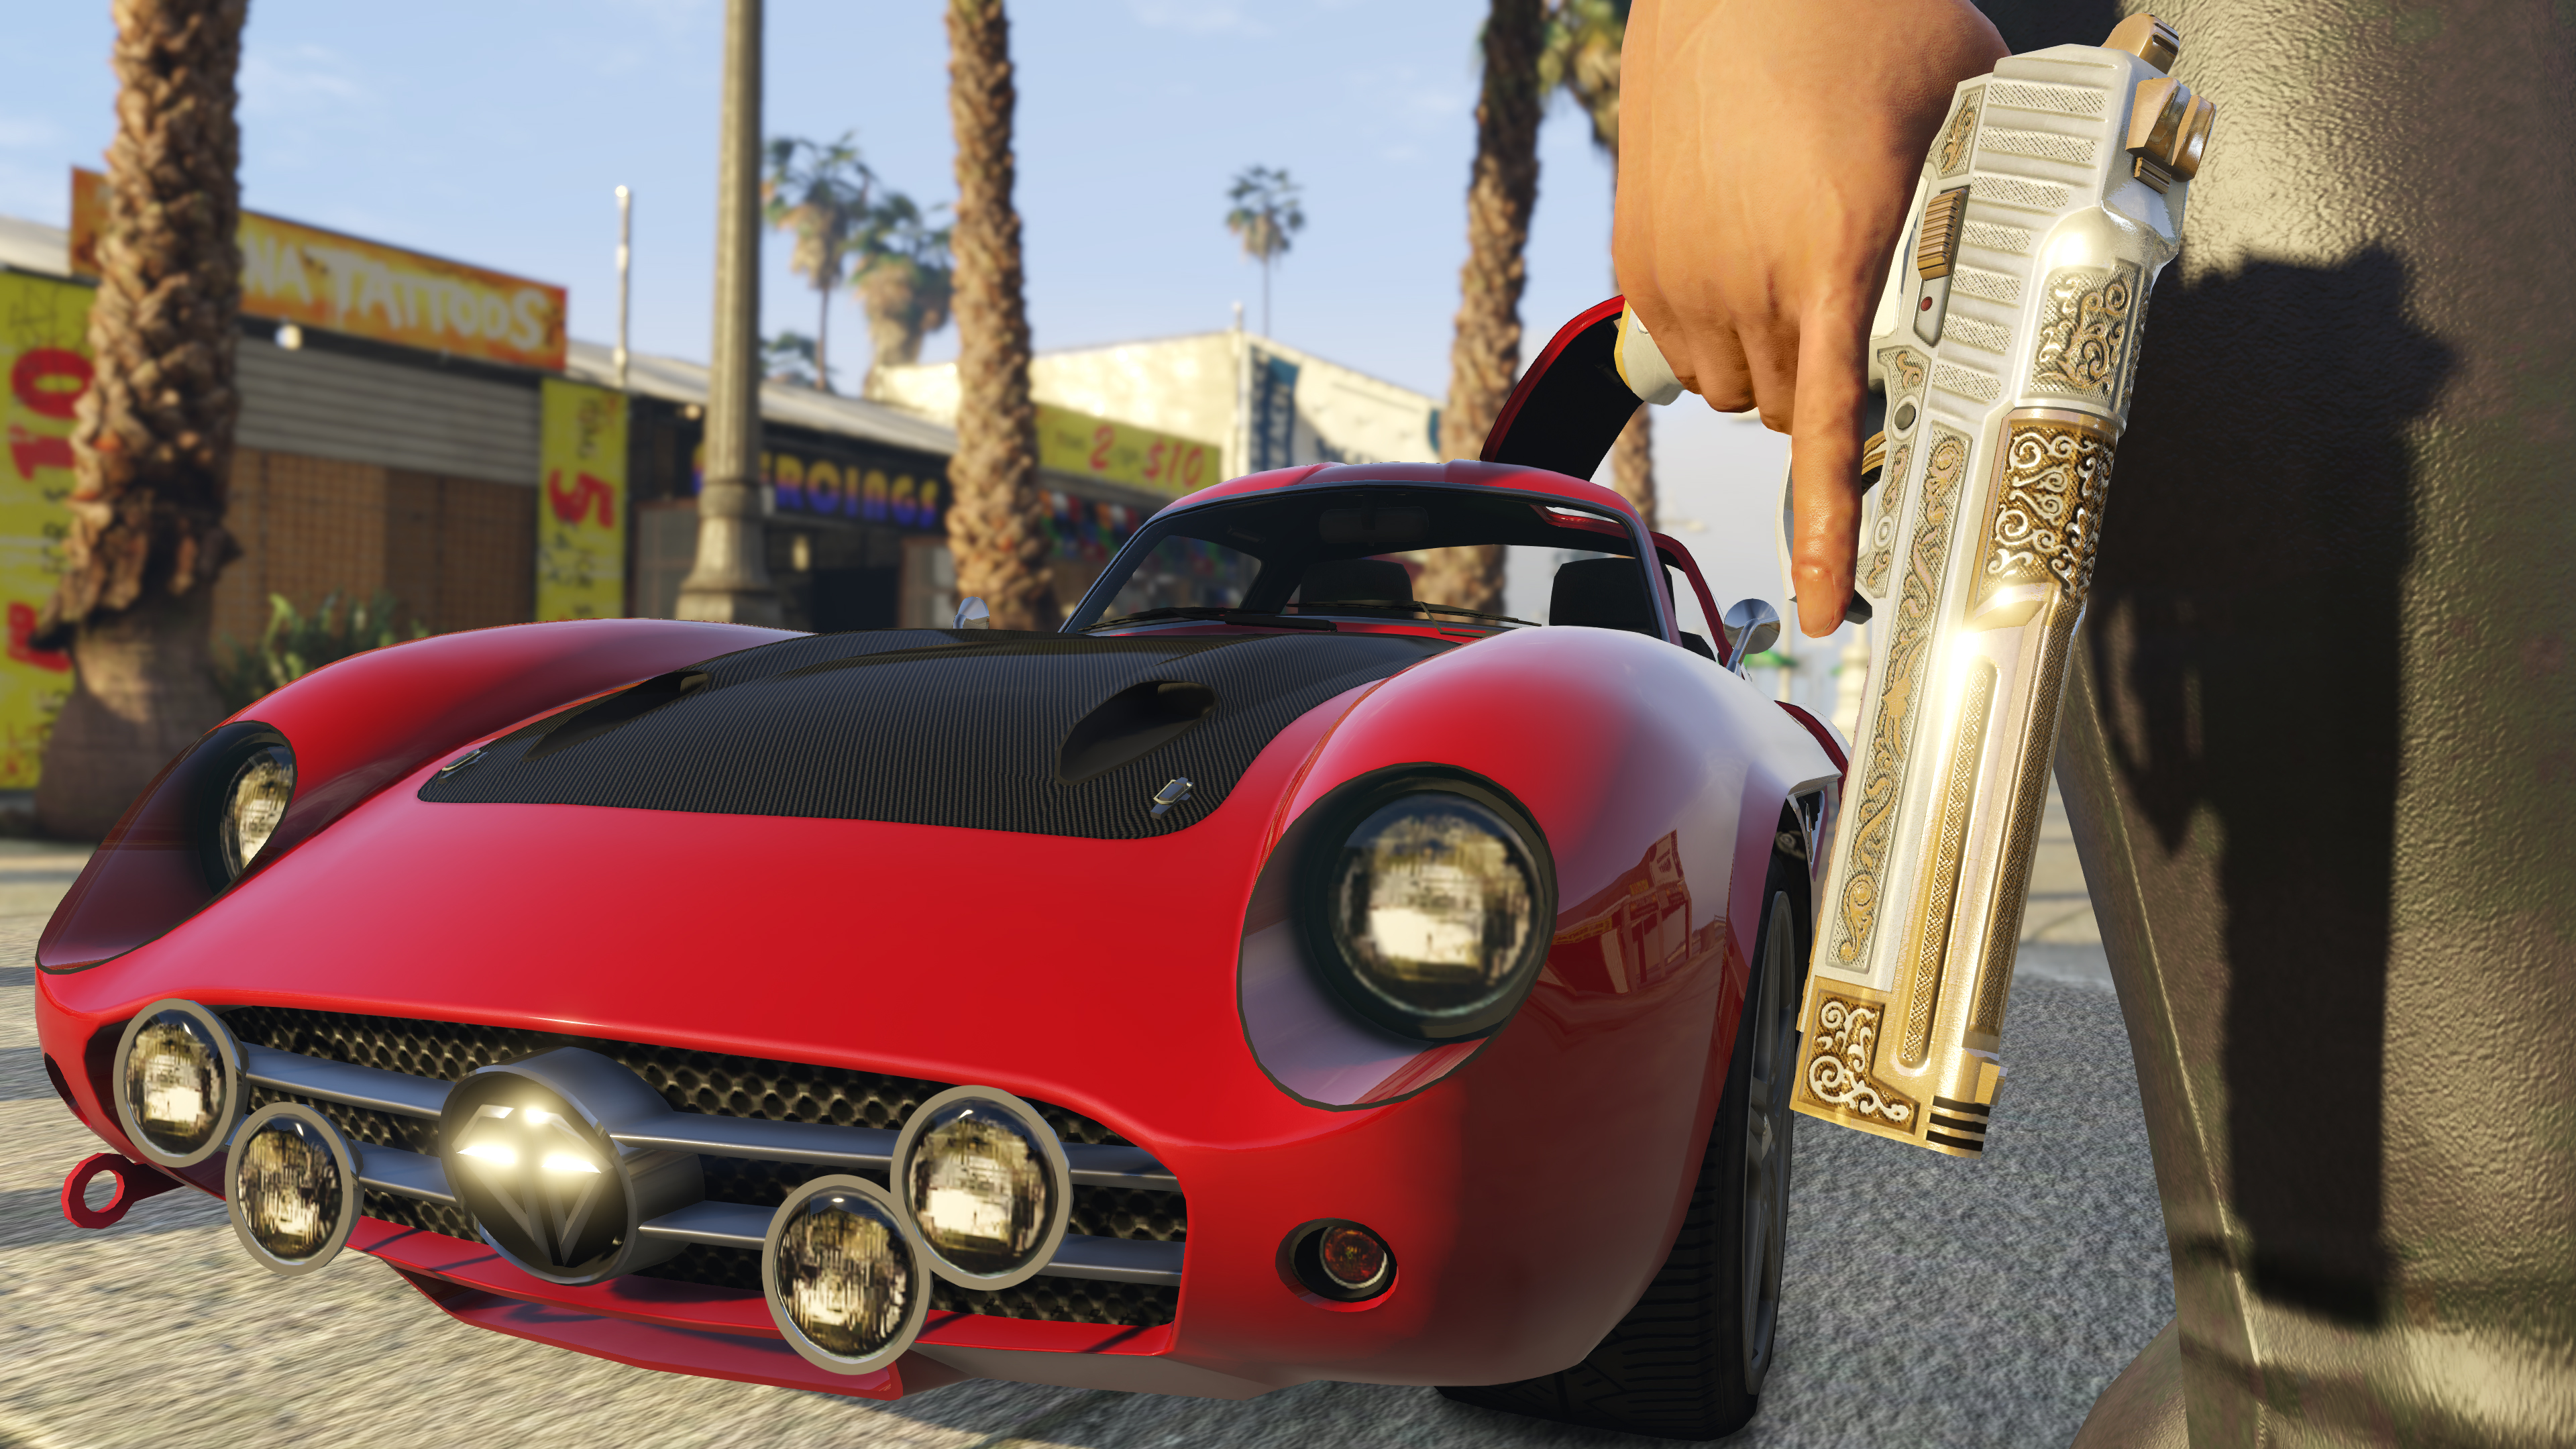 Rockstar Editor and new GTA Online update coming soon to consoles